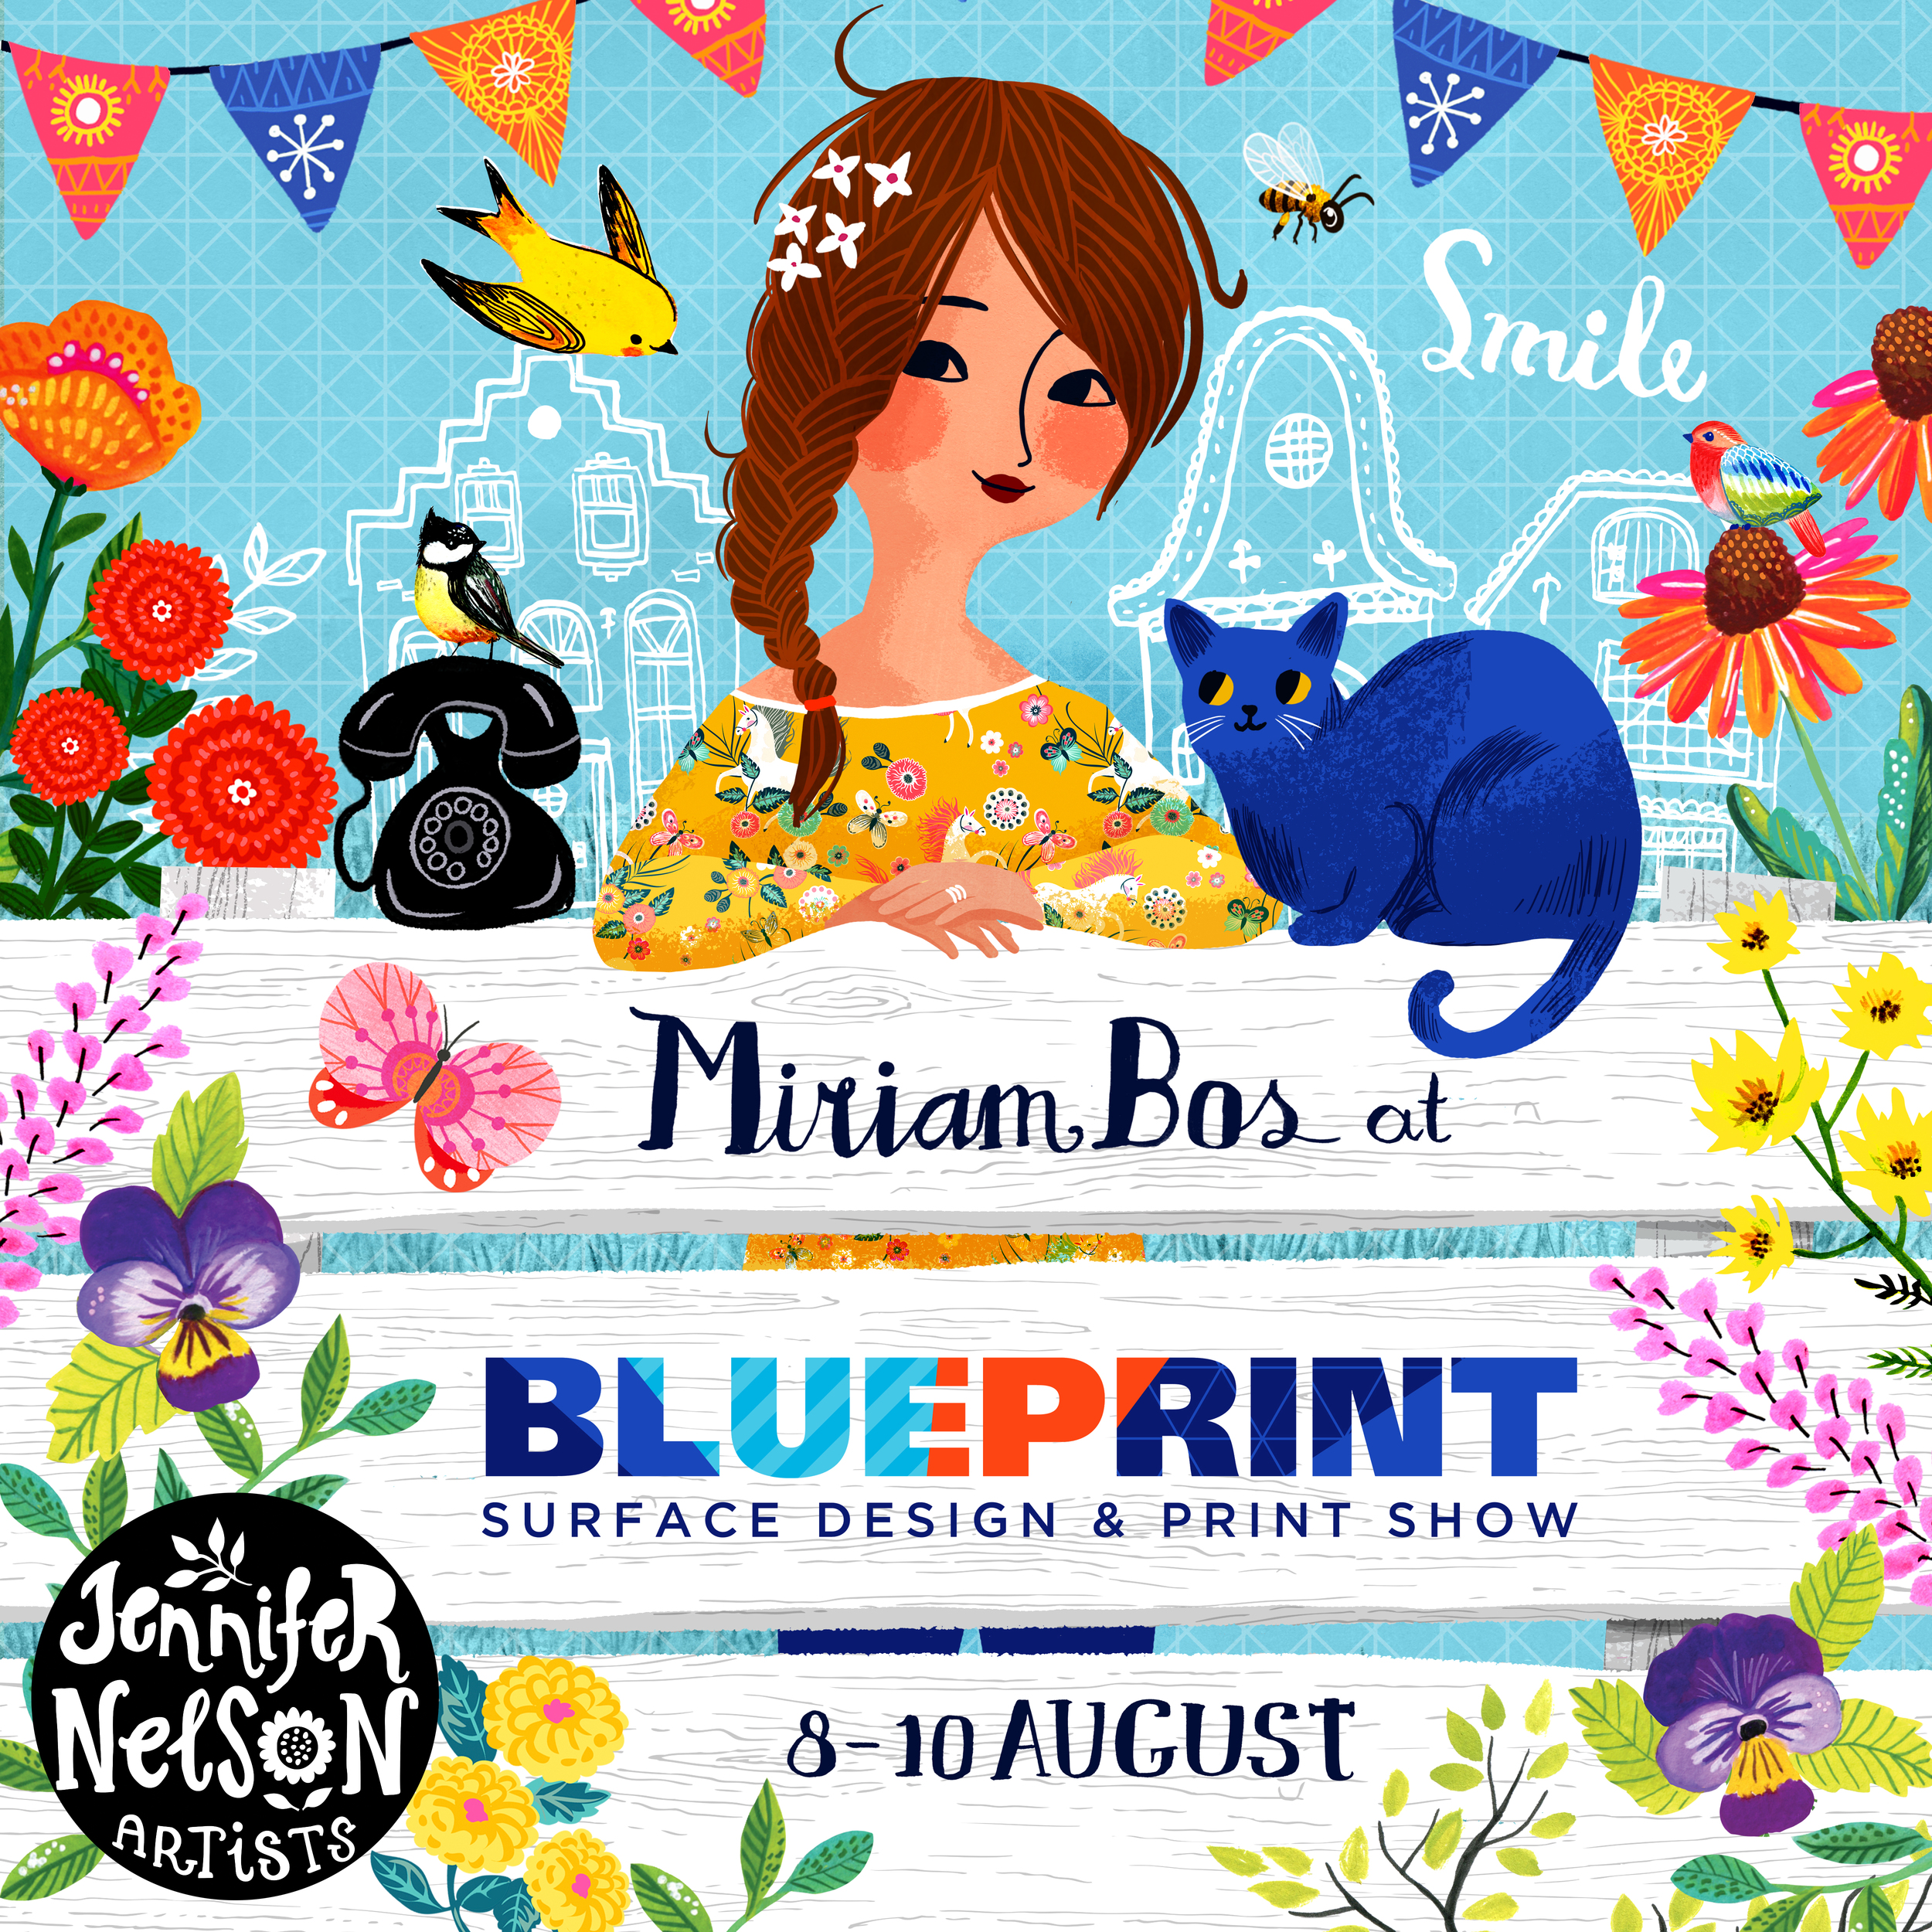 Come see Miriam and all the JNA artists' fantastic work at BLUE PRINT! 8-10 AUGUST in NYC!